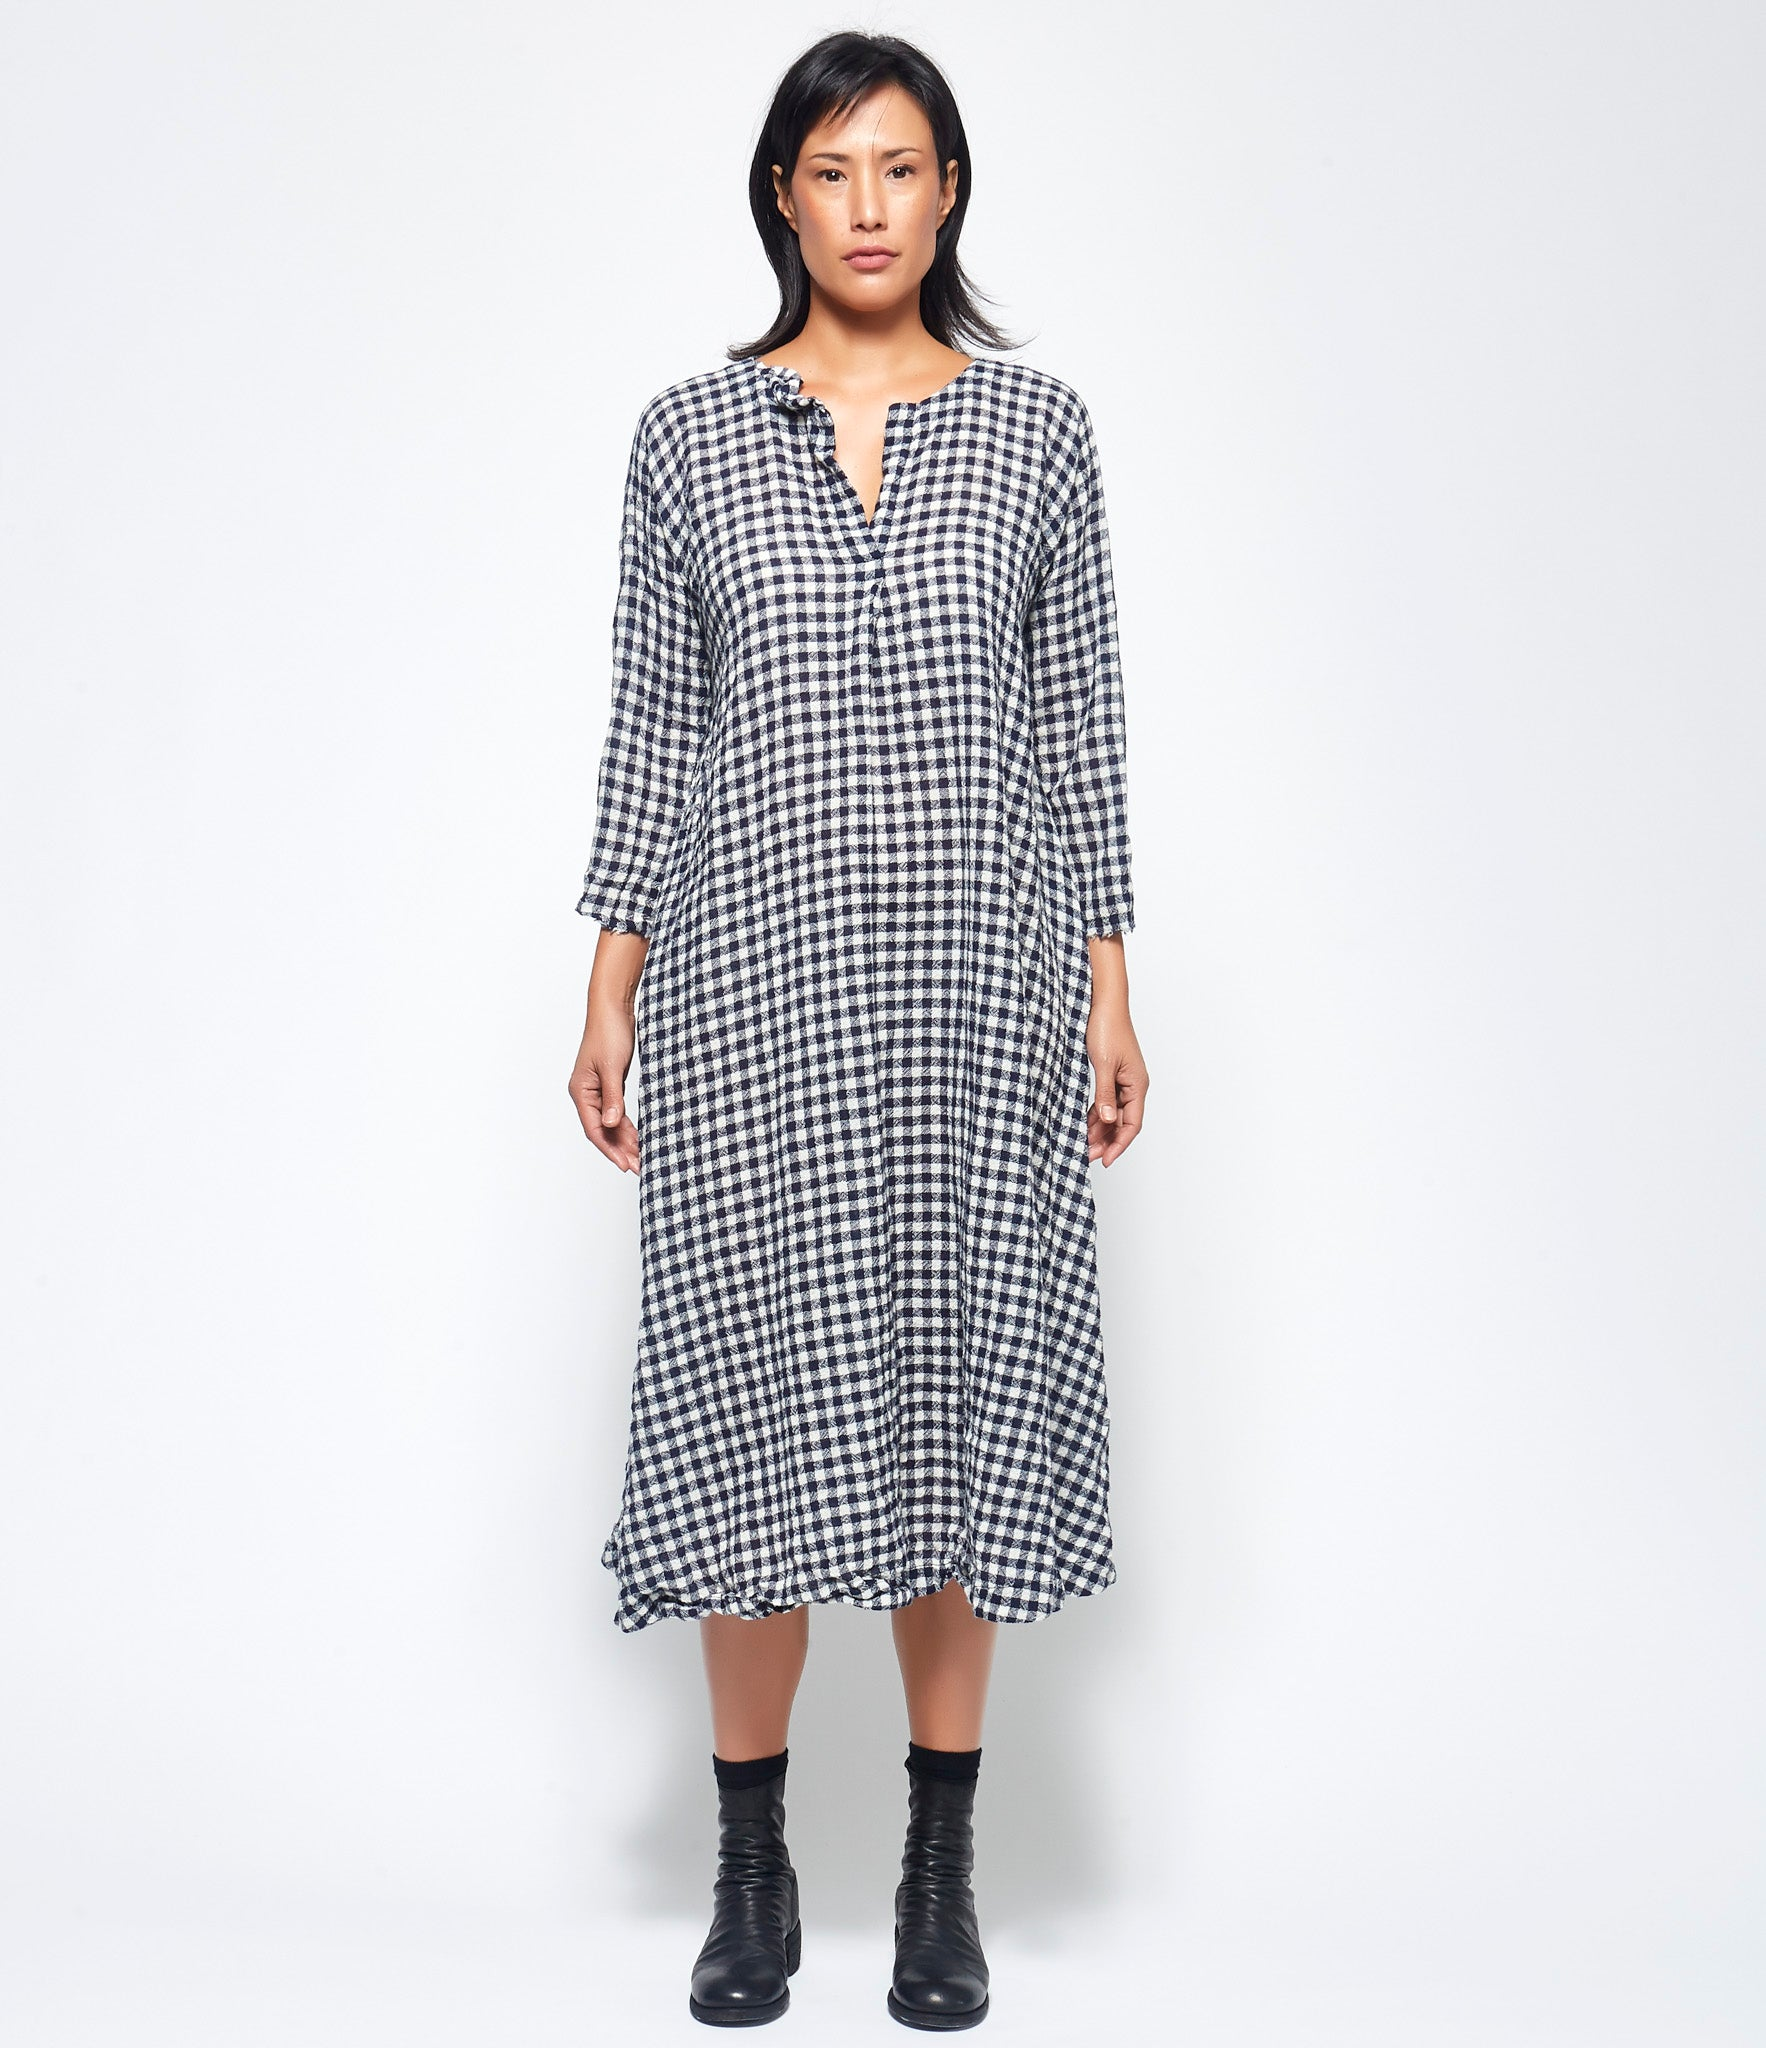 Daniela Gregis Spicchi Collo Teresa Washed Dress